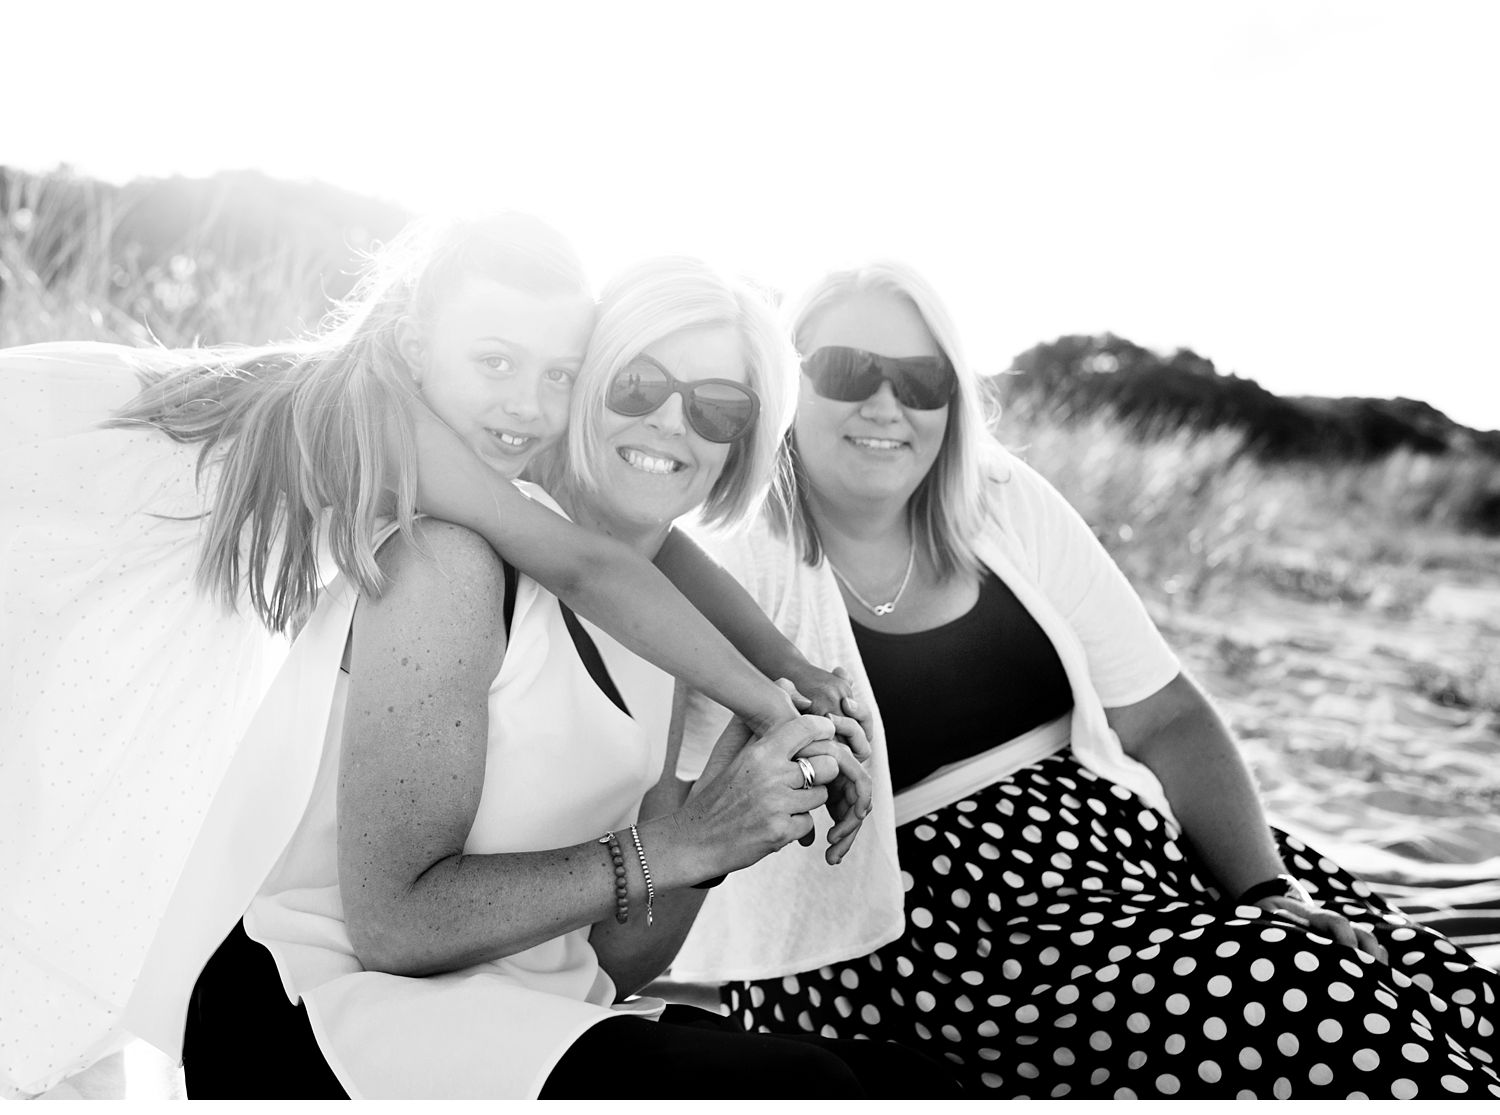 bec-stewart-photography-extended-family-photography-session-melbourne-australia-city-of-casey-57.jpg